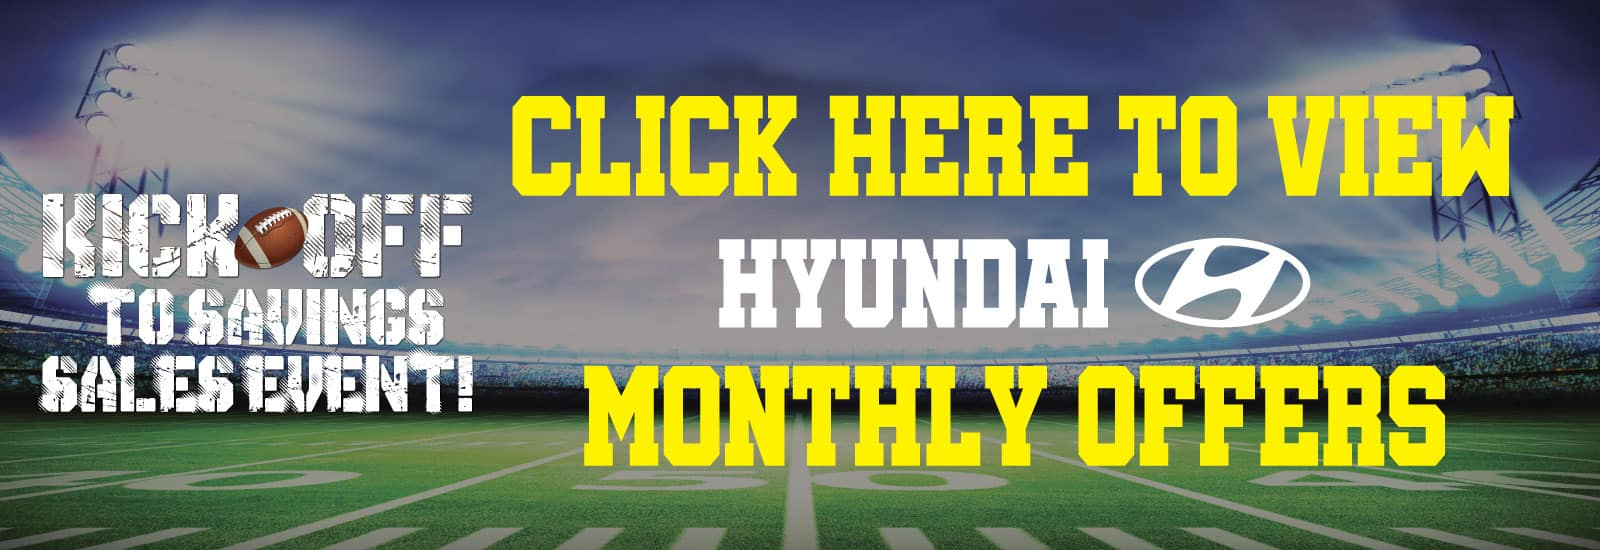 View-Hyundai-Monthly-Offers-Banner-1600×550.jpg-Sept